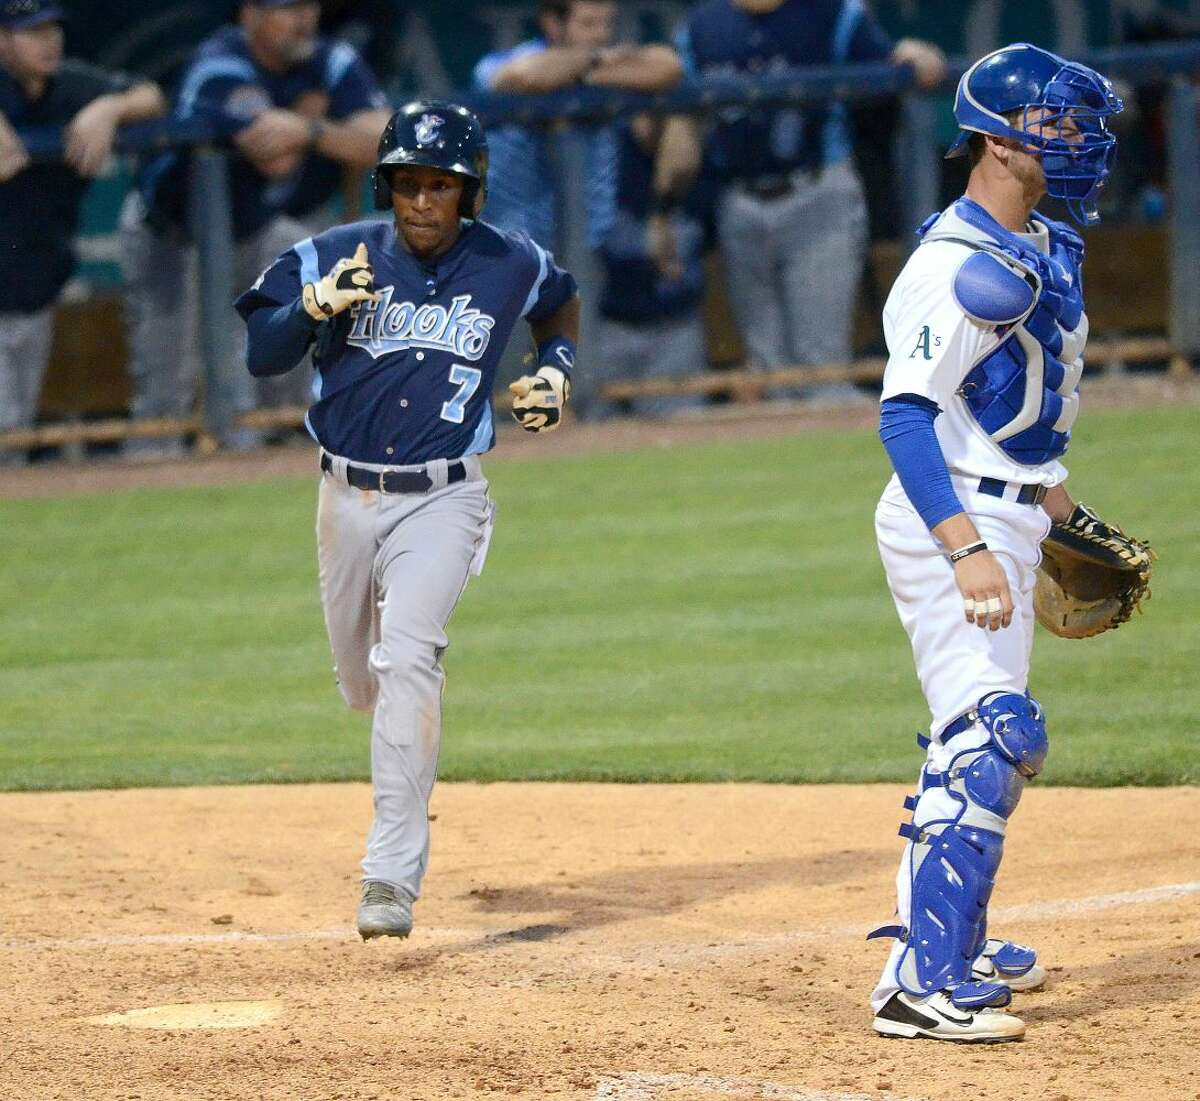 Corpus Christi's Tony Kemp tags home to score against the Rockhounds on Tuesday, June 9, 2015, at Security Bank Ballpark. James Durbin/Reporter-Telegram